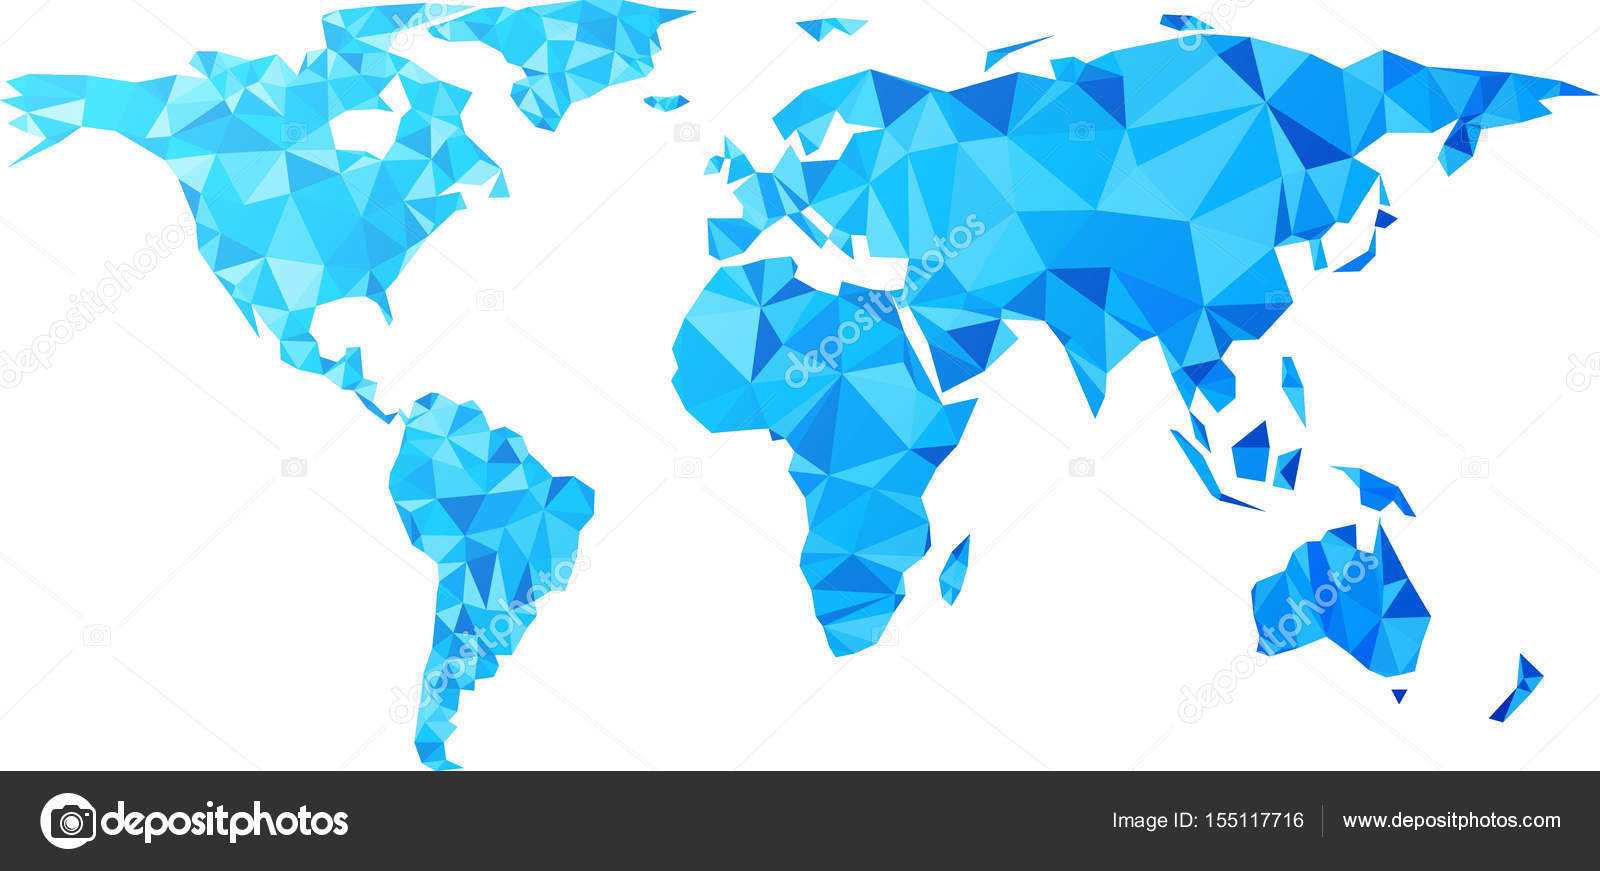 Blue geometric world map stock vector maxborovkov 155117716 blue geometric abstract world map vector paper illustration vector by maxborovkov gumiabroncs Image collections